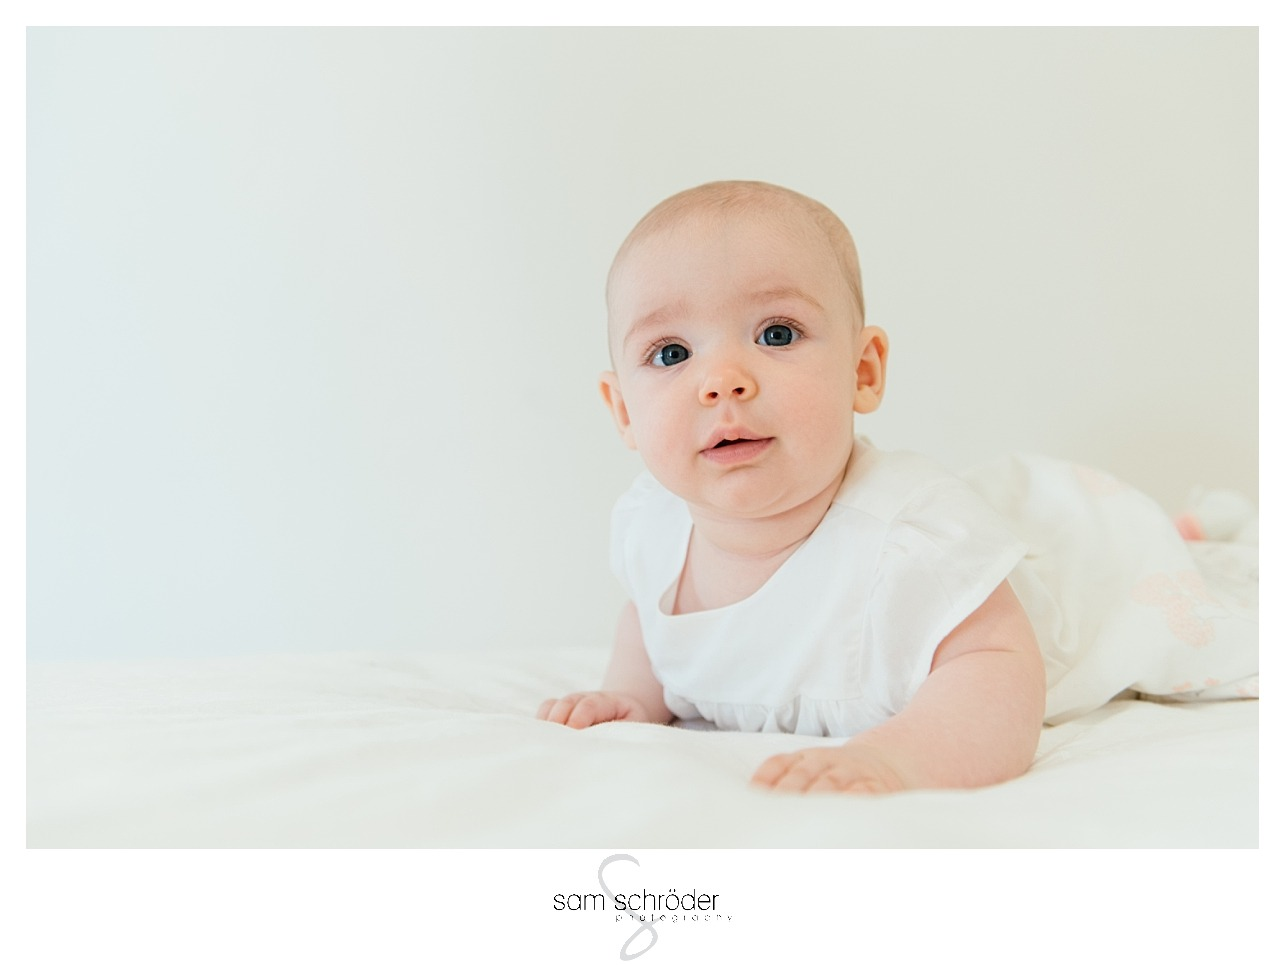 gauteng-newborn-photographer_-christening_-baby-photography_lifestyle-photography_pretoria-photographer_-sam-schroder-photography_0001